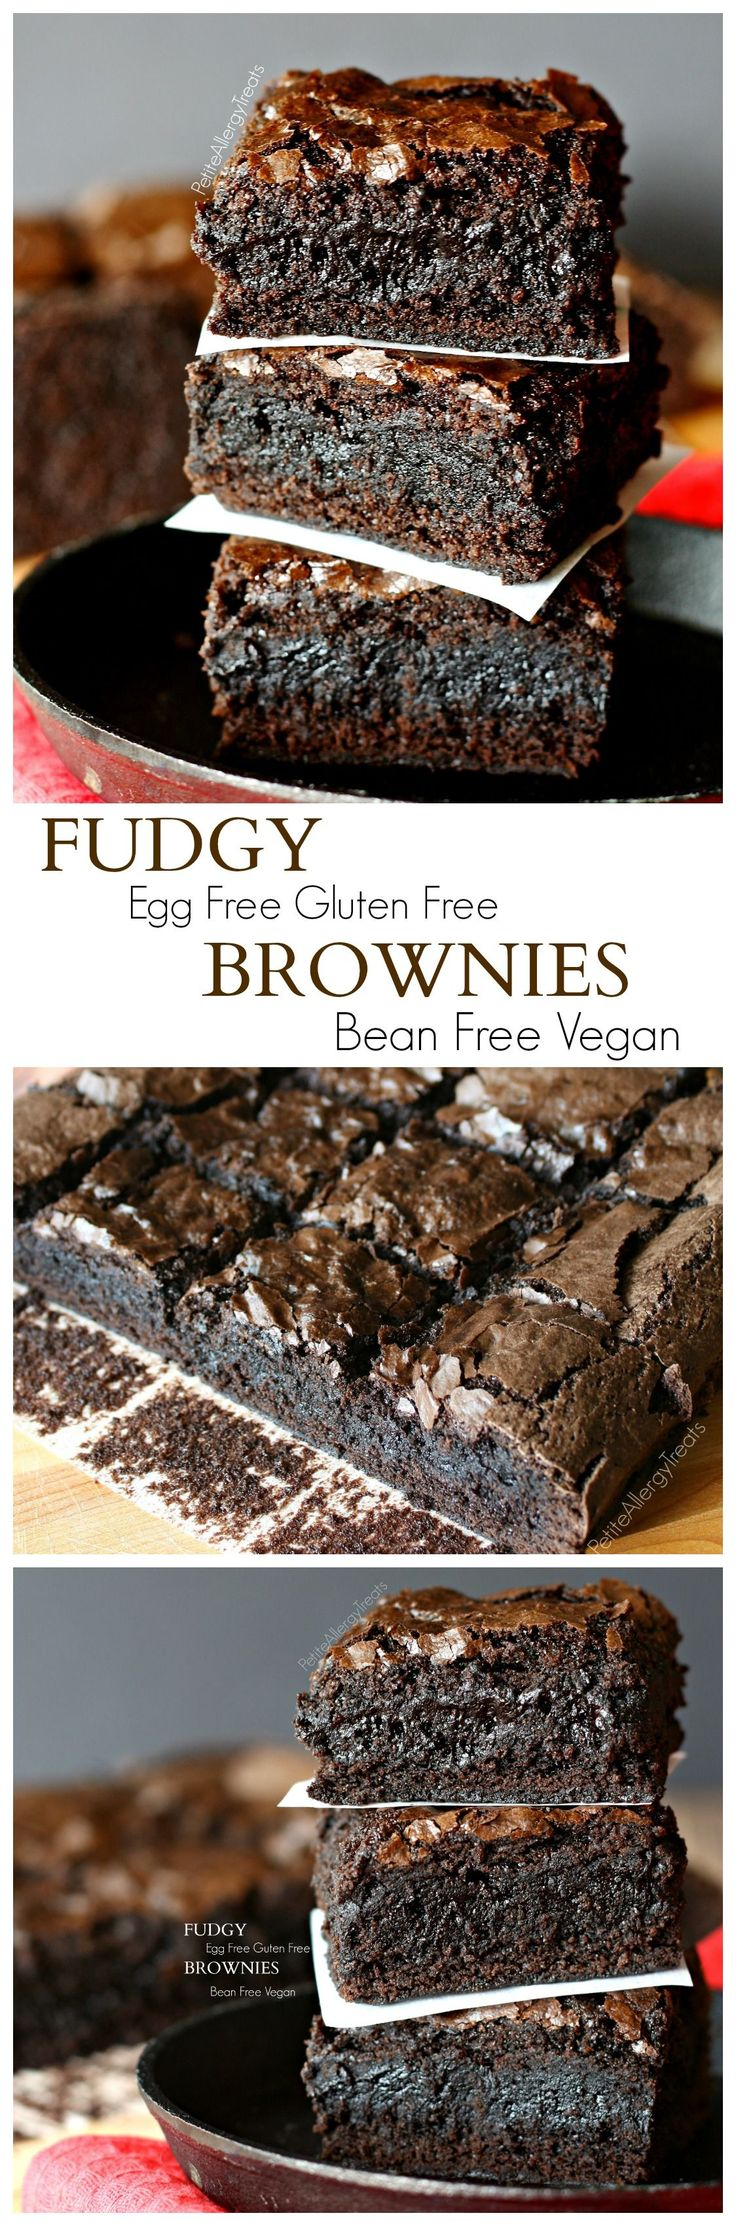 Fudgy Brownies (Gluten free Egg Free No Bean Vegan)- Decadent rich eggless brownie that is super fudgy!